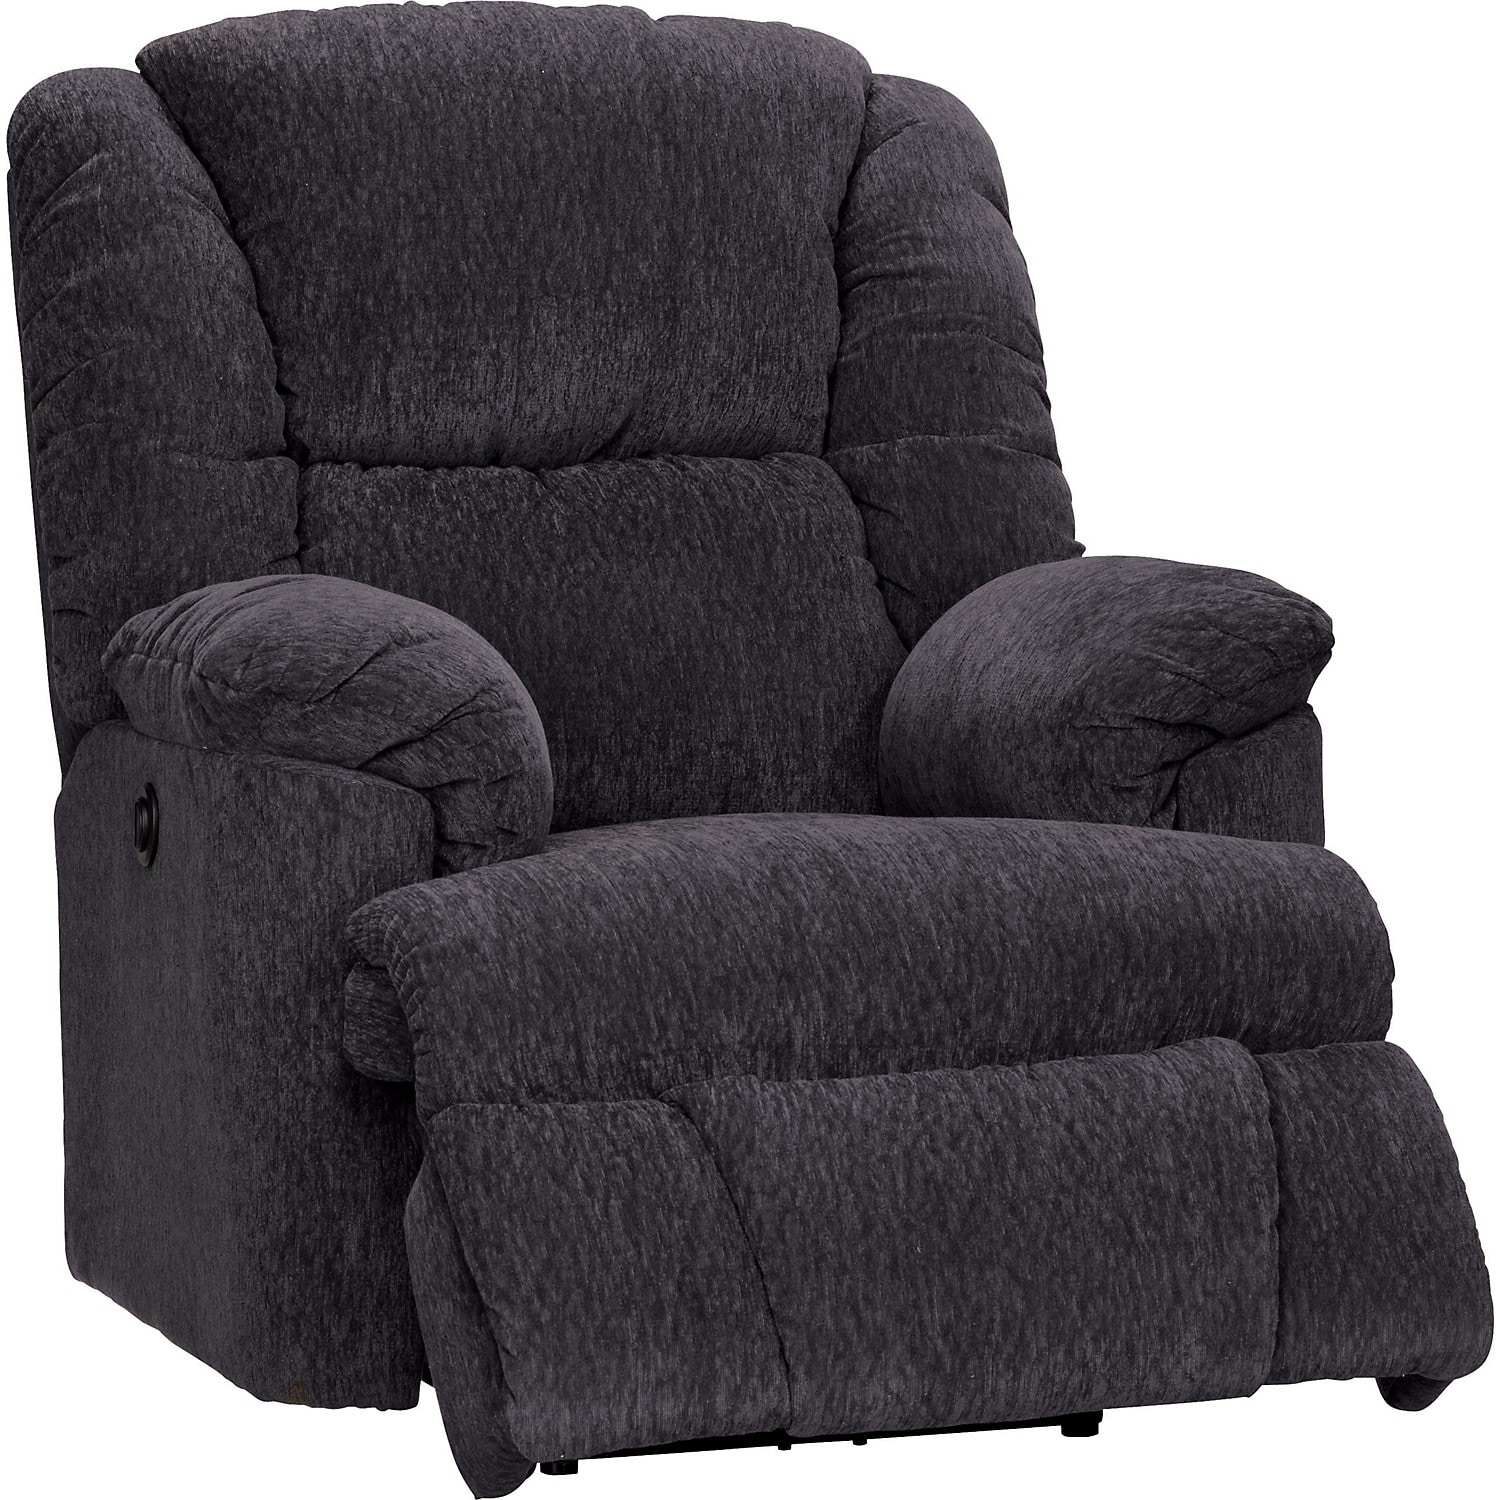 Gray Recliner Chair Bmaxx Grey Chenille Power Recliner The Brick